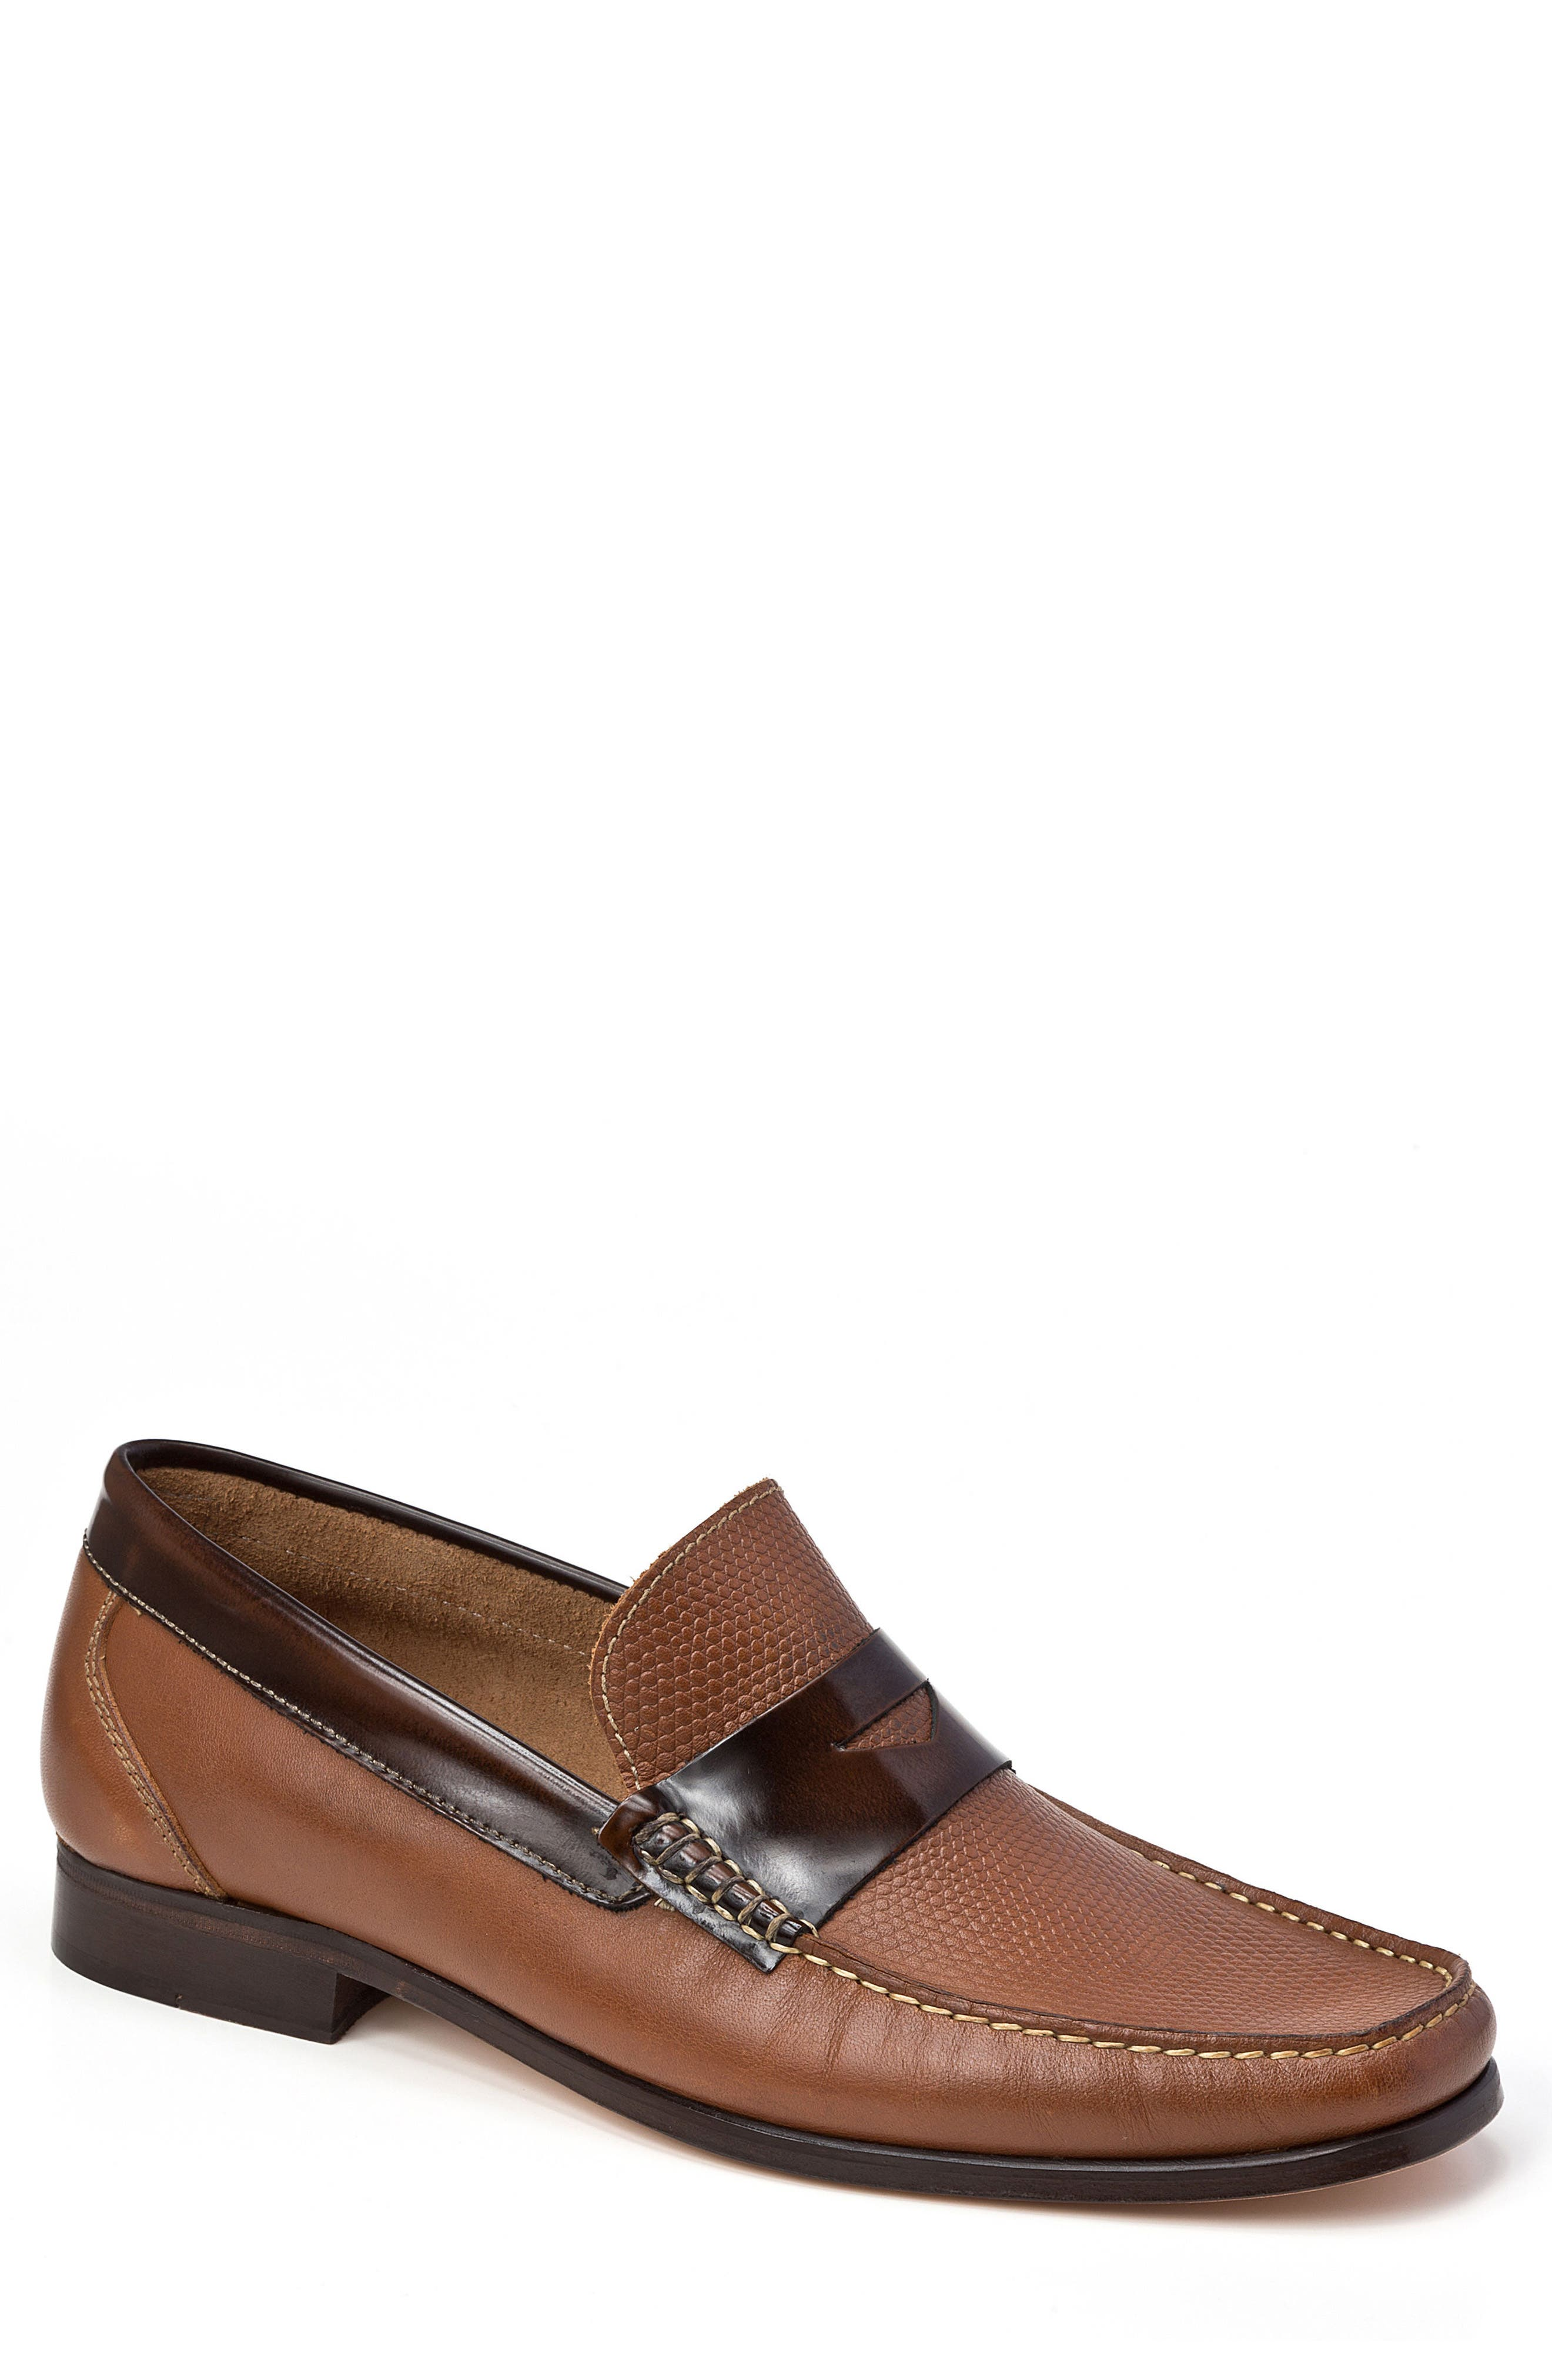 Bilbao Pebble Embossed Penny Loafer,                             Main thumbnail 1, color,                             Tan